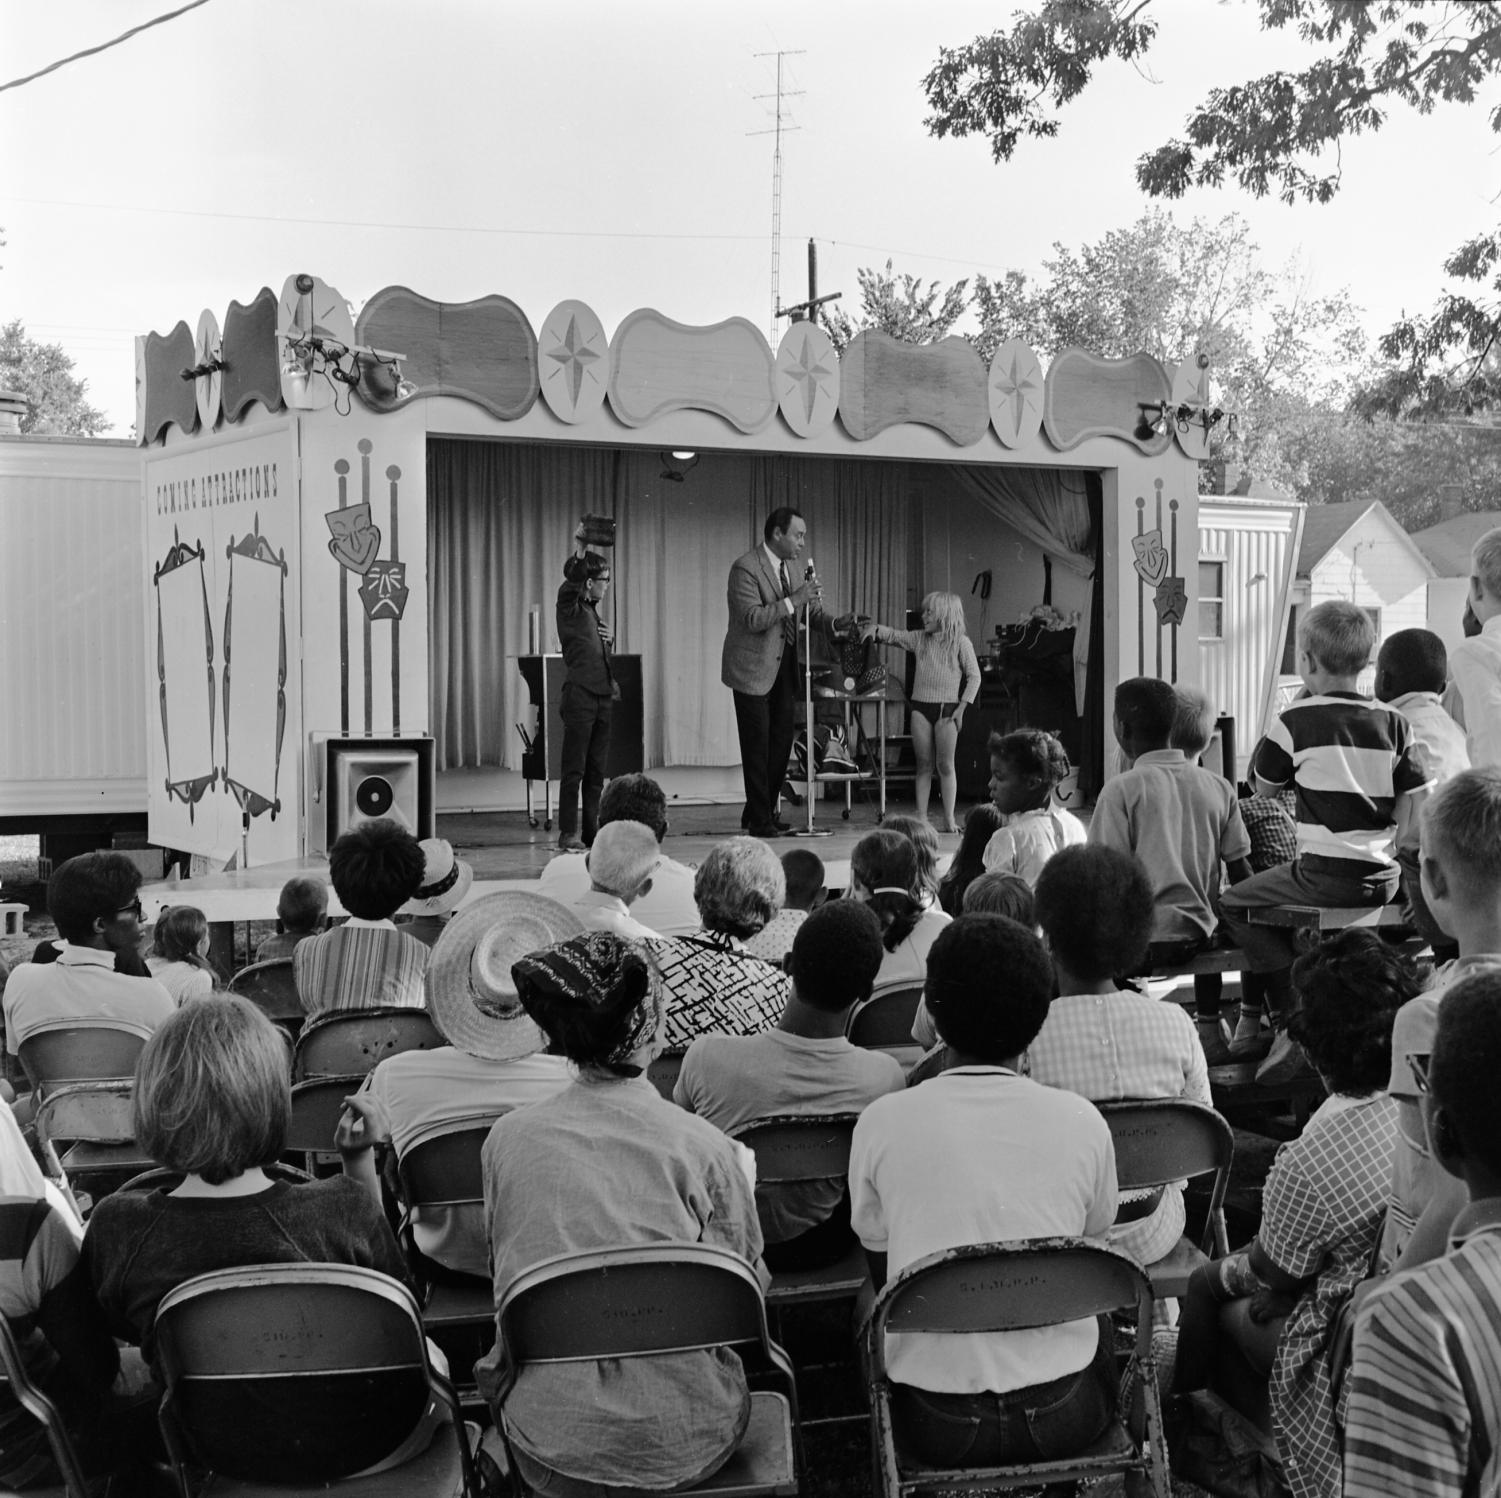 Spectators+watch+a+show+at+the+Lincoln+Park+playground+celebrating+the+Fourth+of+July.+Photo+courtesy+of+Morris+Library+Special+Collections+Research+center%2C+collection+of+%E2%80%9CNeighboring+Celebration%2C%E2%80%9D+from+July+4%2C+1968.